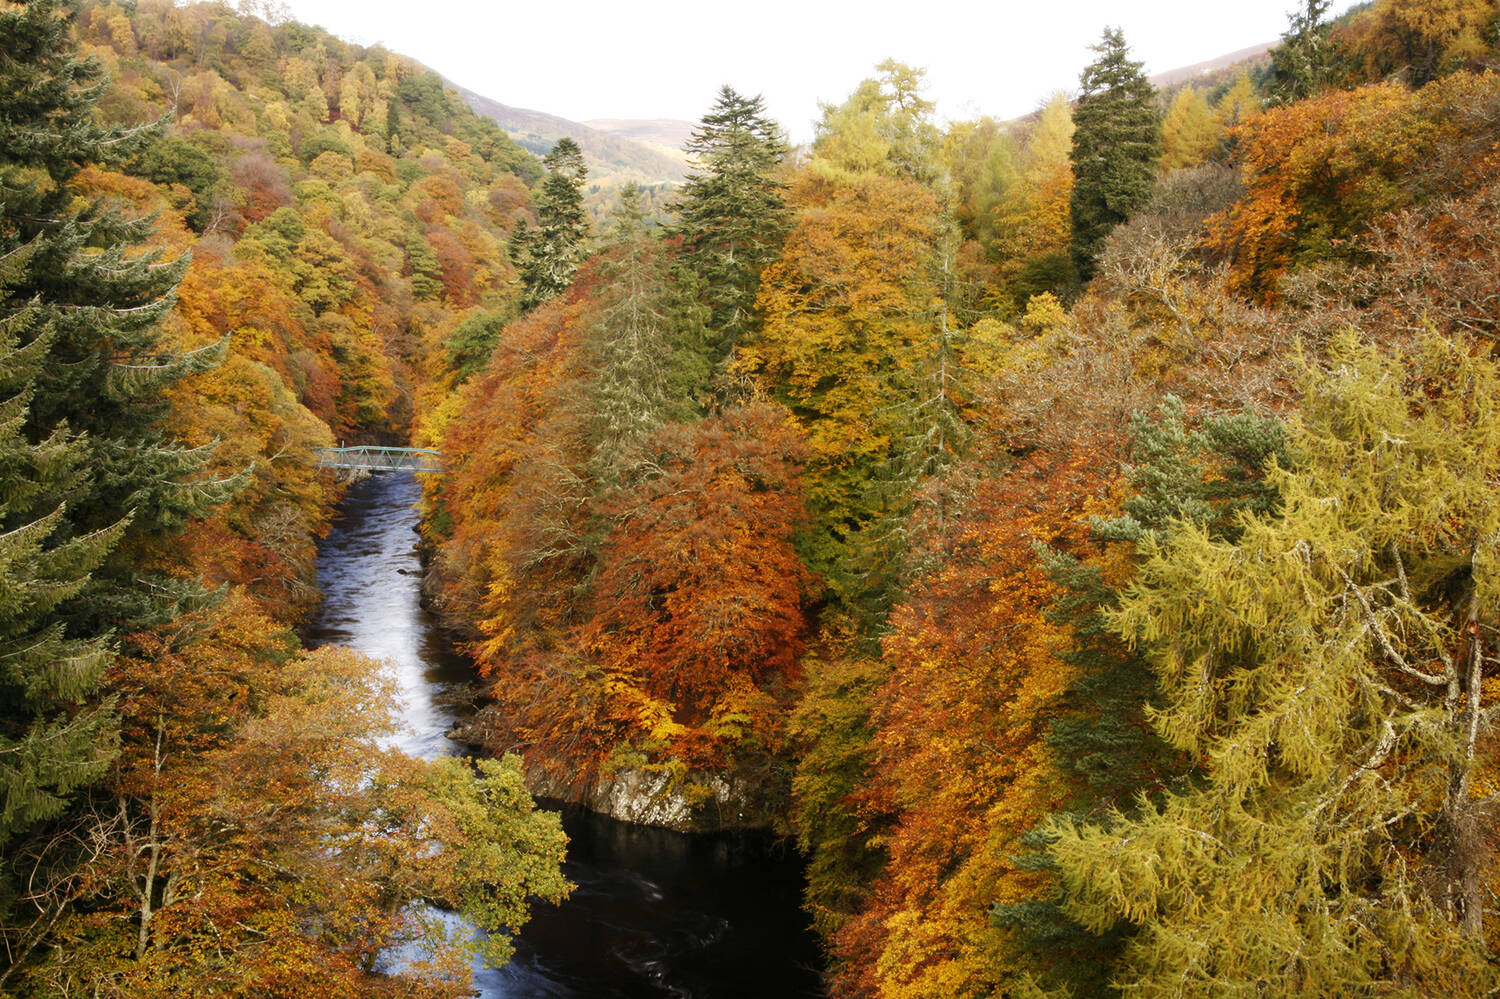 An aerial colour photograph of Killiecrankie in autumn, showing the trees in their autumn colours. The rivers runs through the centre of the image, with the footbridge in the distance.